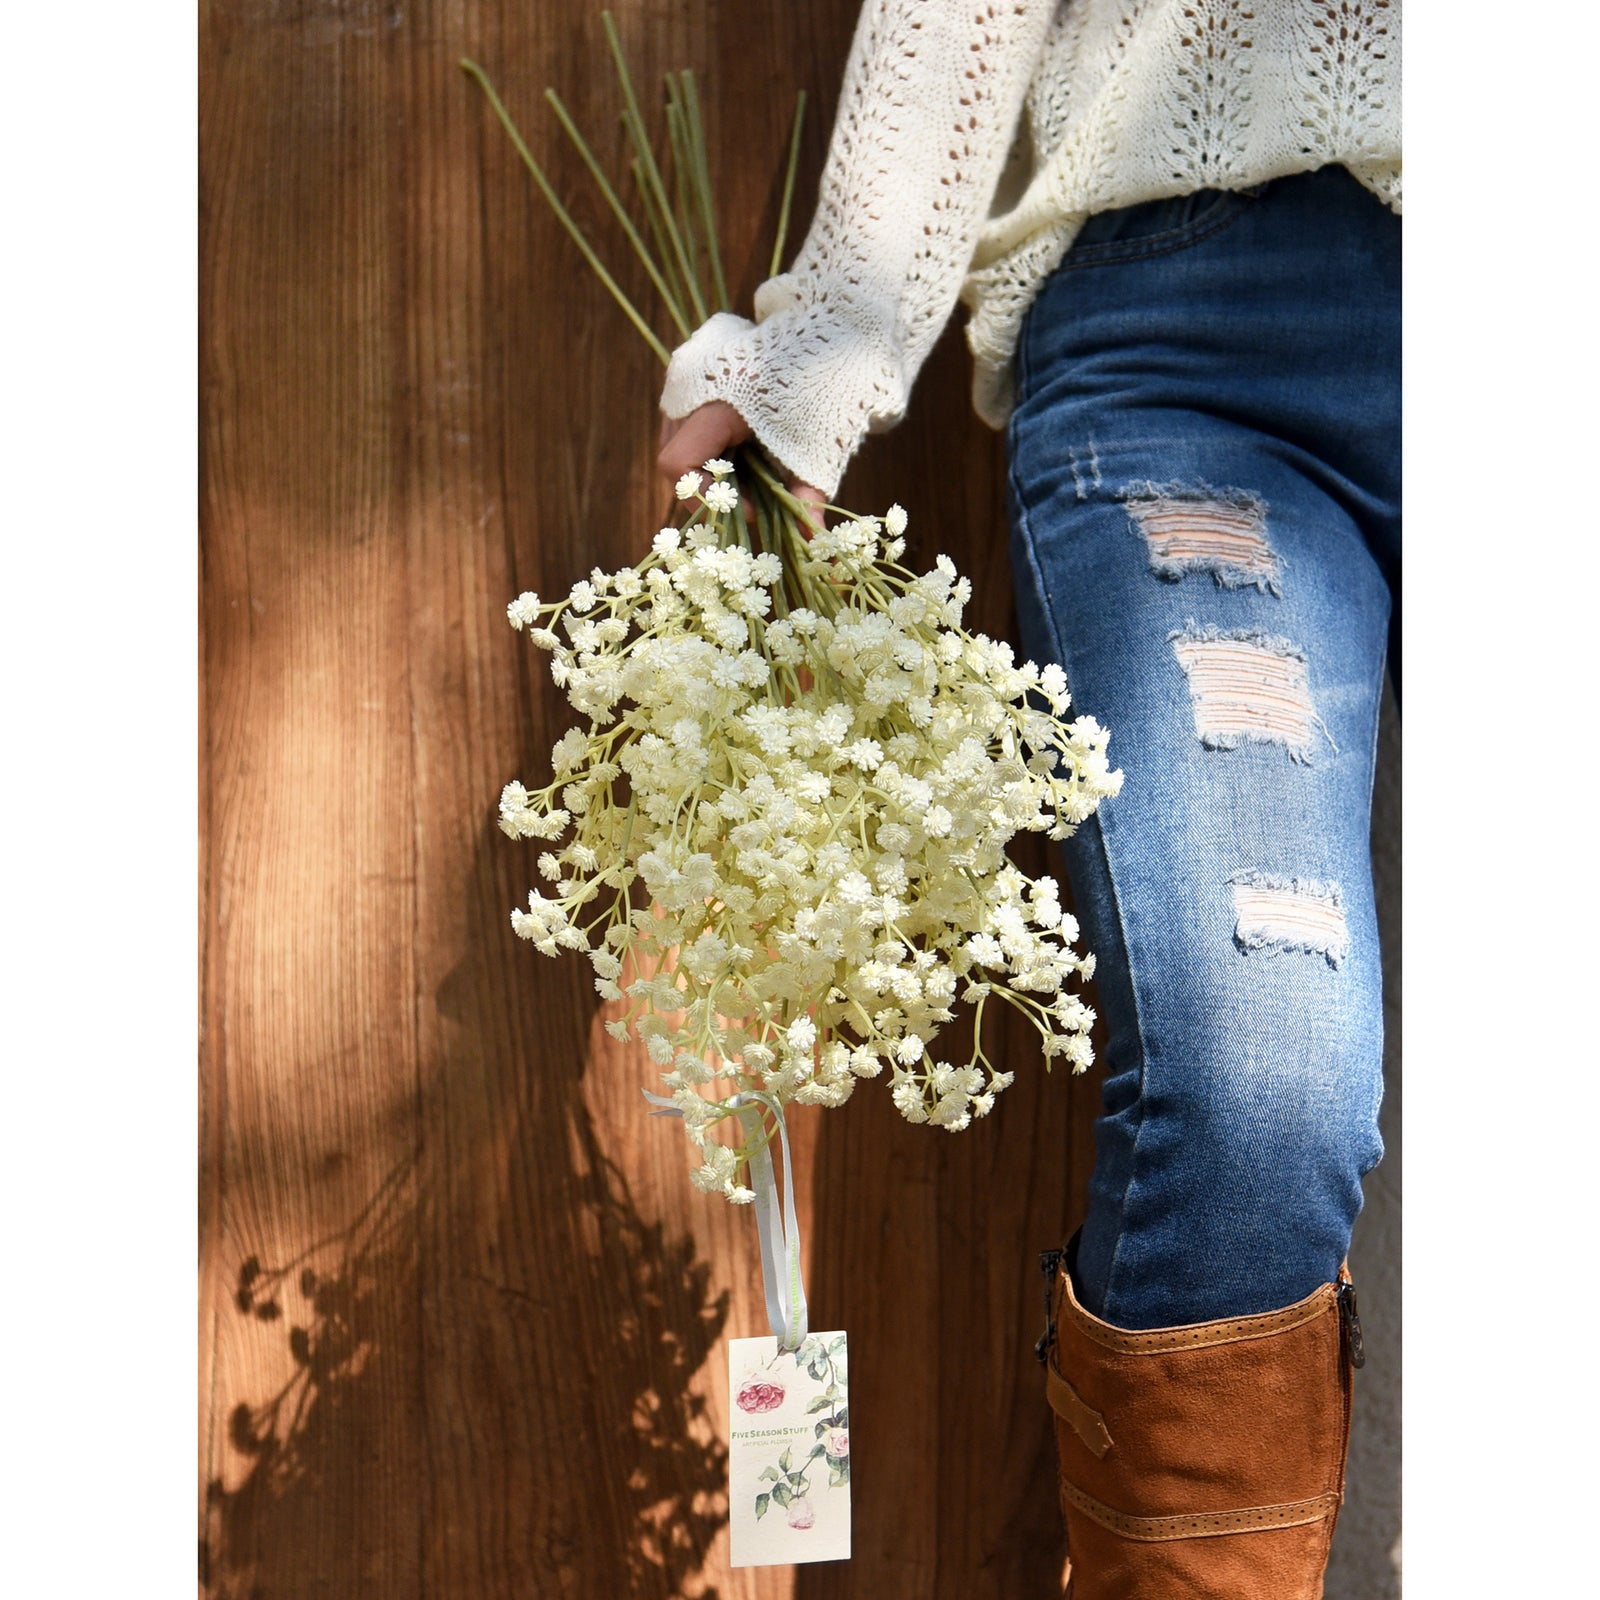 FiveSeasonStuff Baby's Breath Artificial Flowers 10 Baby's Breath Gypsophila 2 ft Tall Long Stems for Floral Arrangement, Wedding Flower Bouquet Décor (Vintage White)